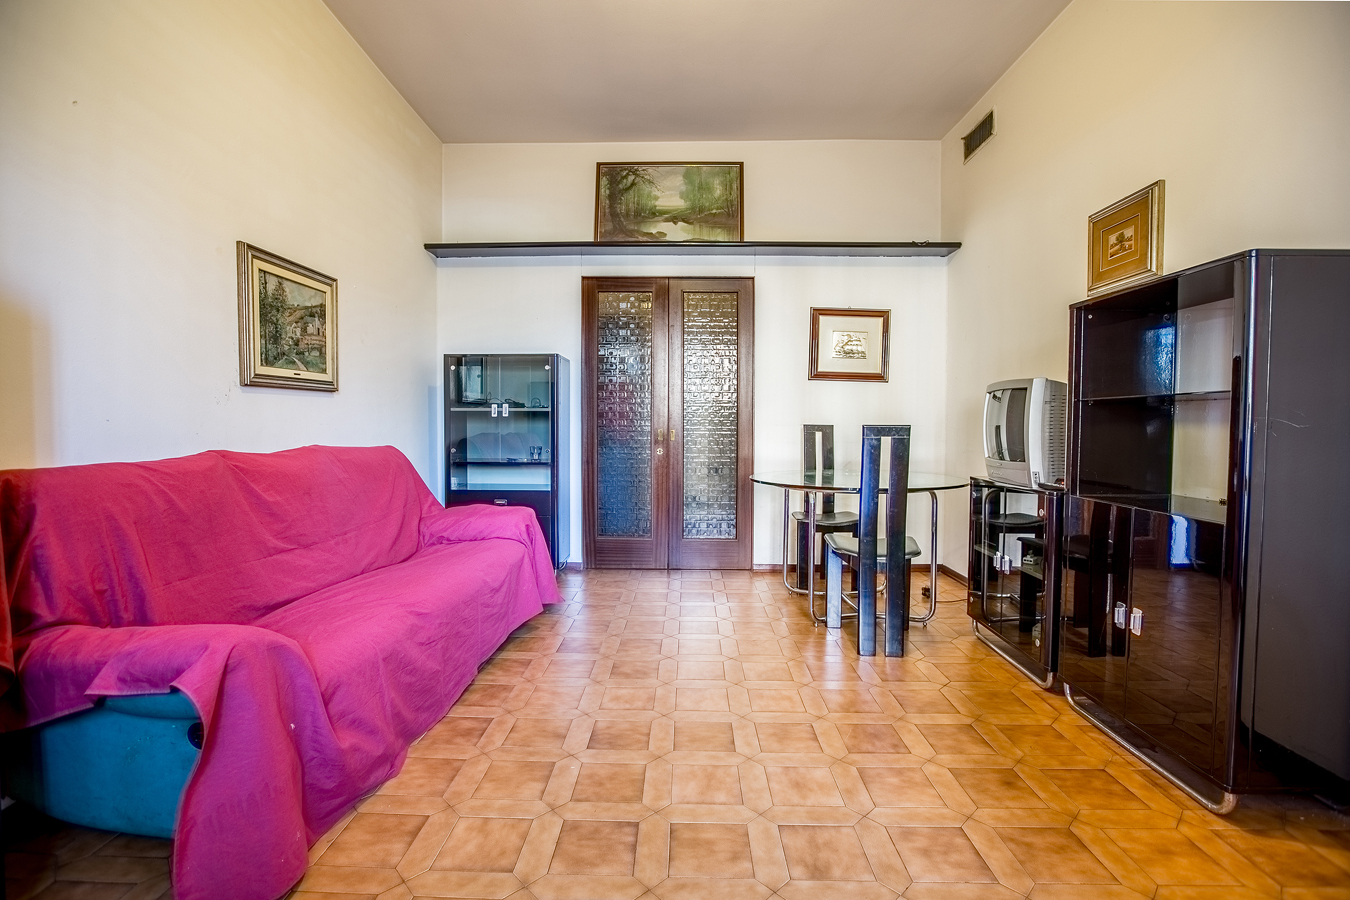 Student Apartment for rent in Via del Reno, 14, 0° floor, in Milano, Italy